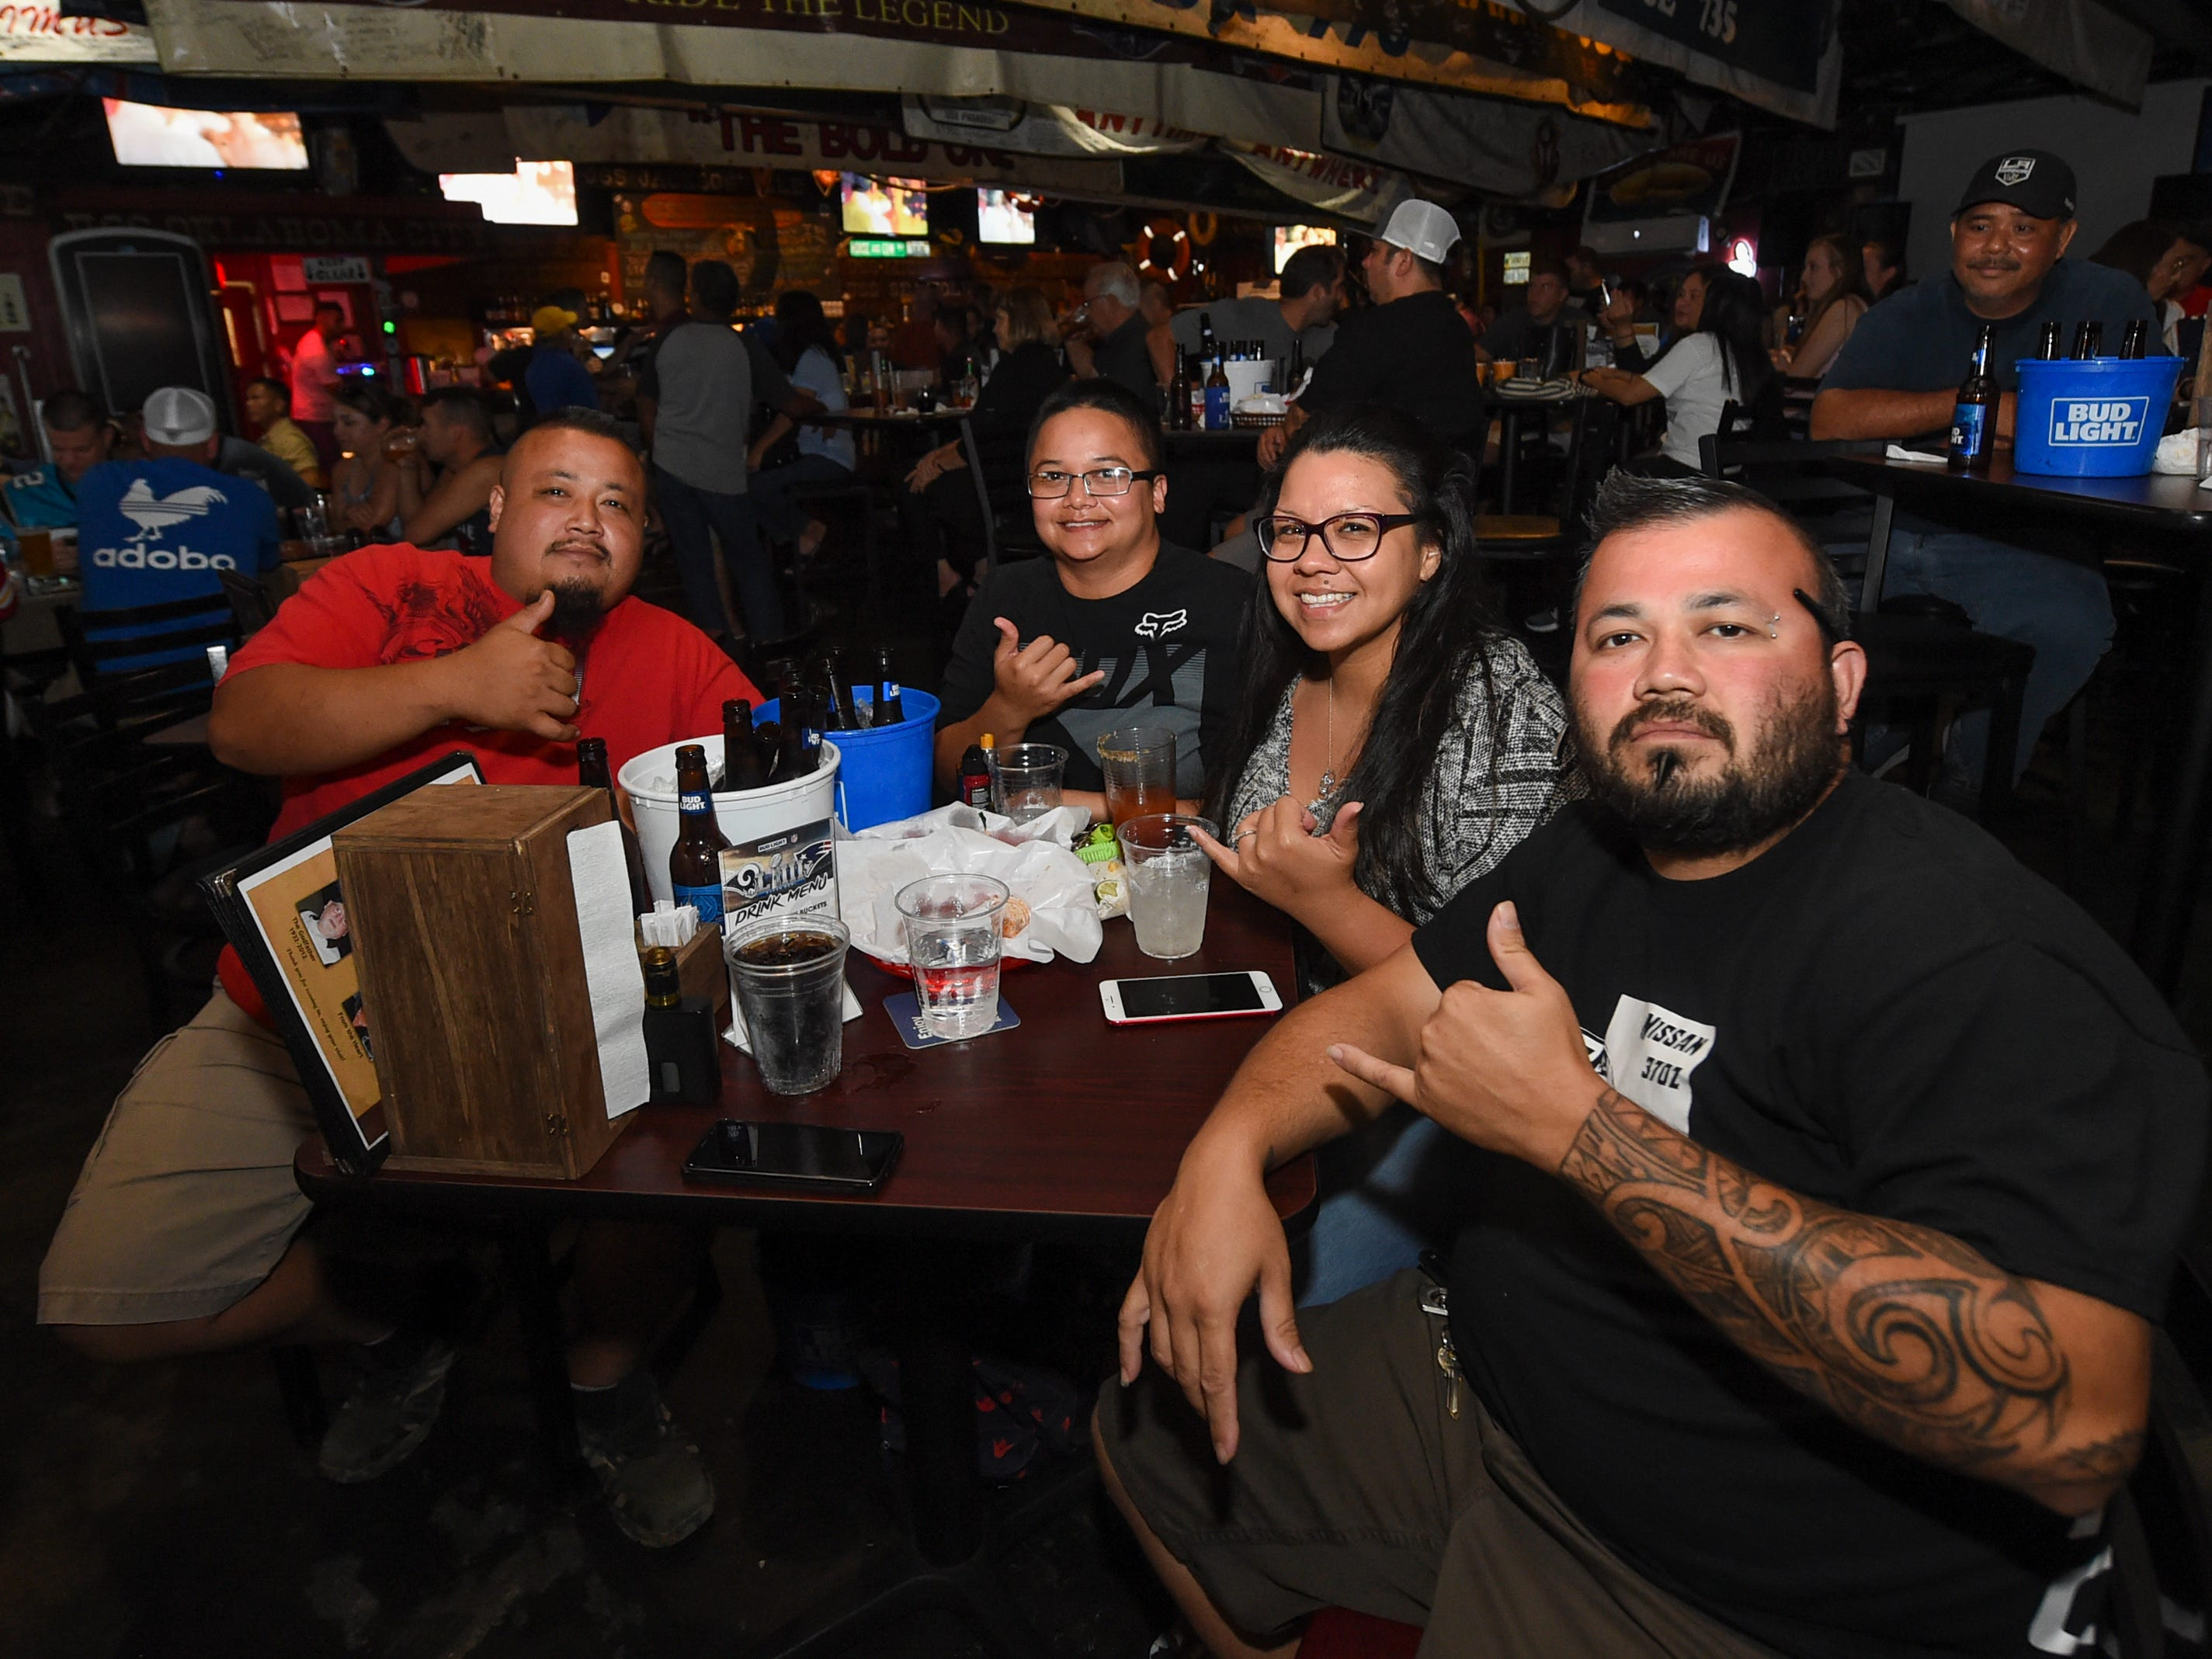 A Superbowl 53 party is held at Horse and Cow Superbowl in Tamuning, Feb. 4, 2019. From left: Ken Aguon, Jasmin Quitugua, Amanda Parker Quitugua, and Frank Aguon.